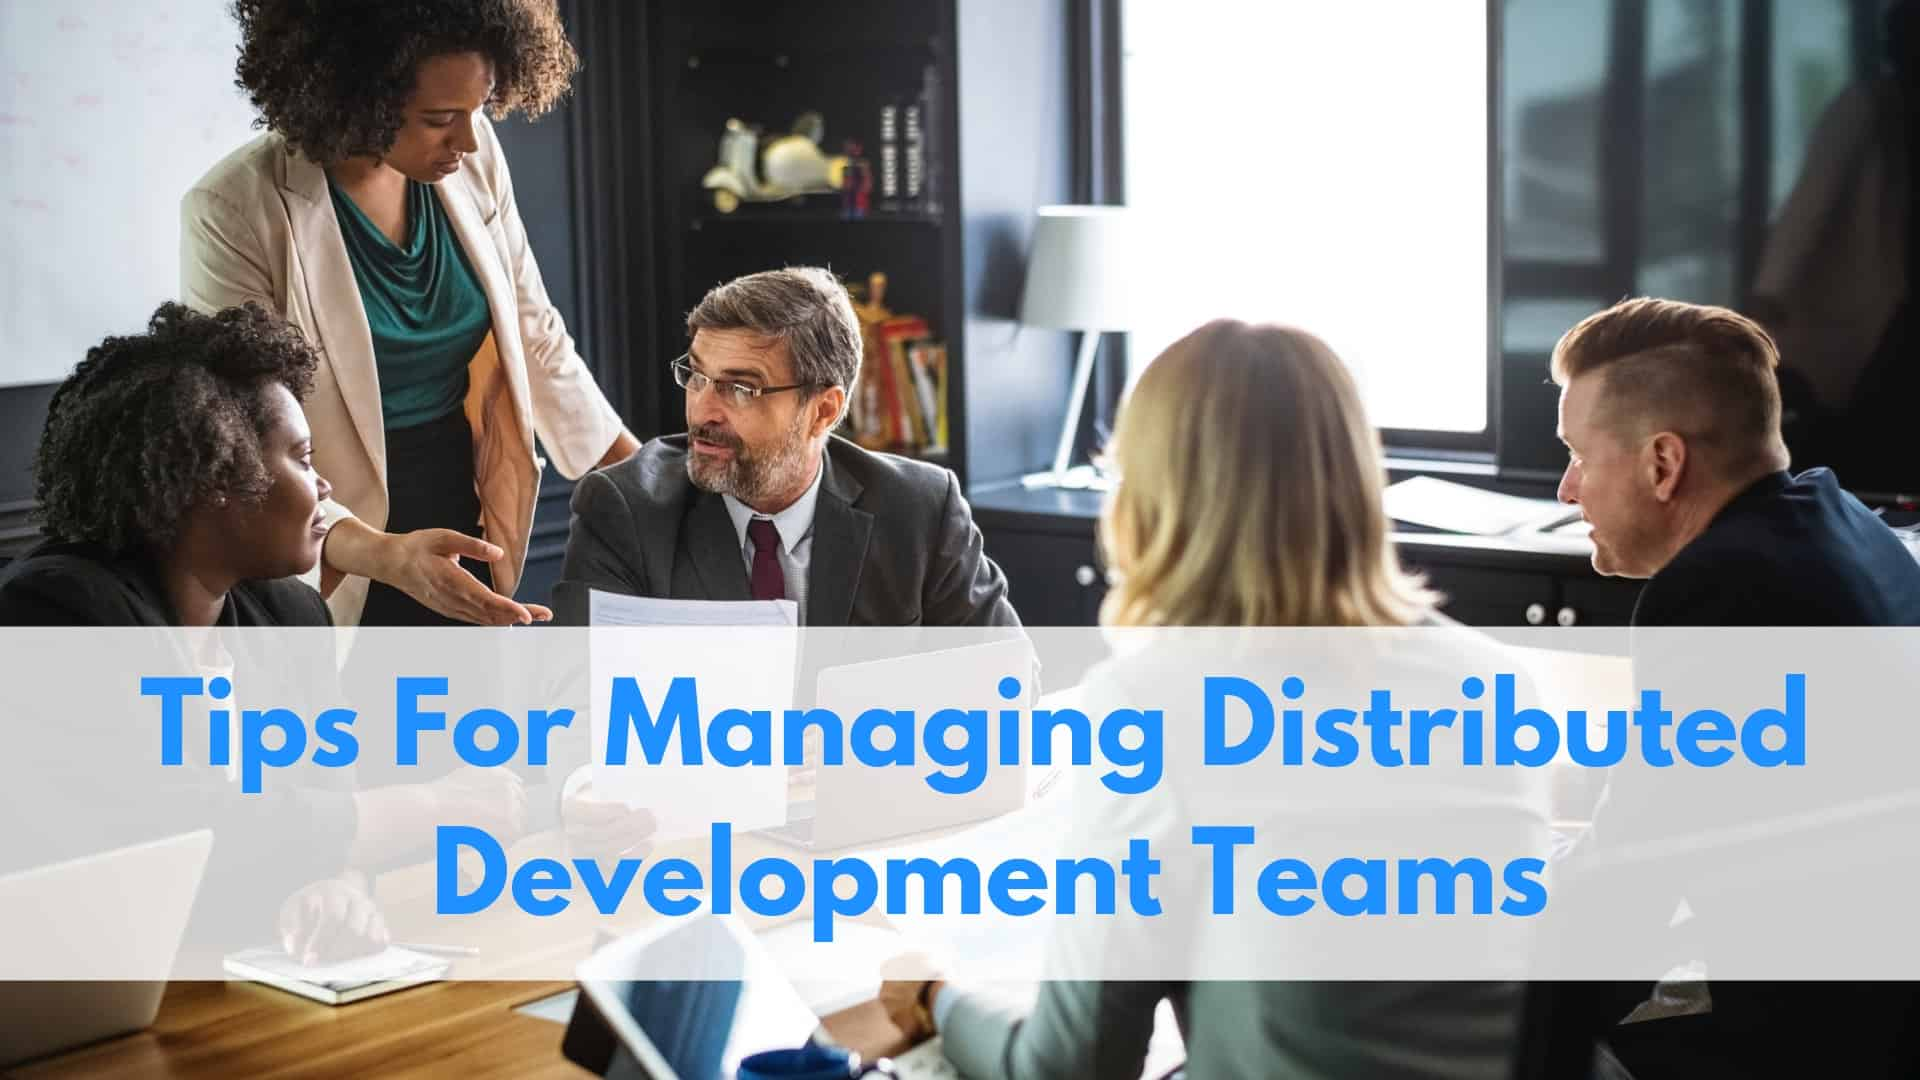 Tips For Managing Distributed Development Teams